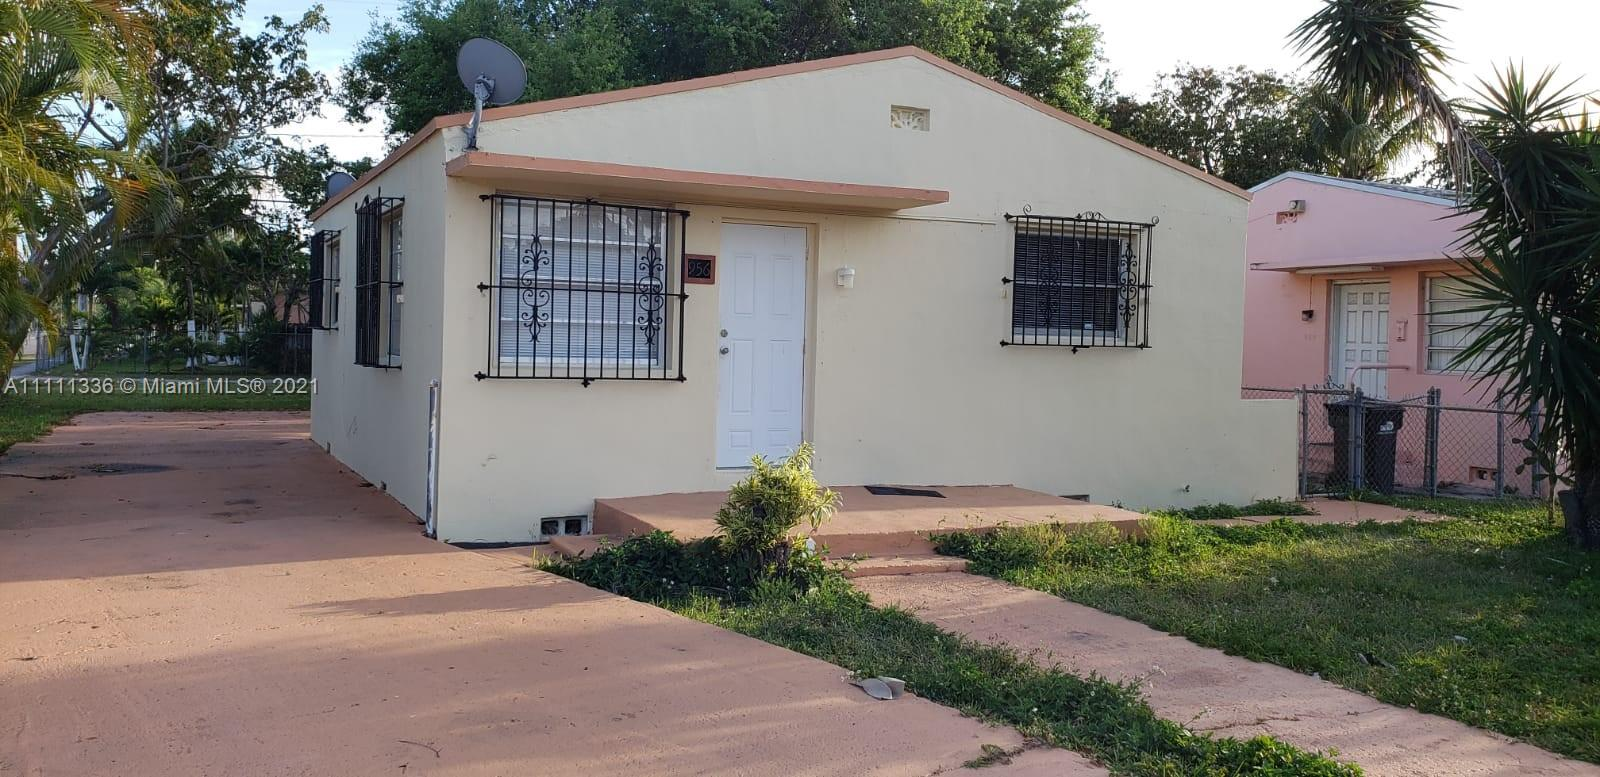 956  Superior St  For Sale A11111336, FL